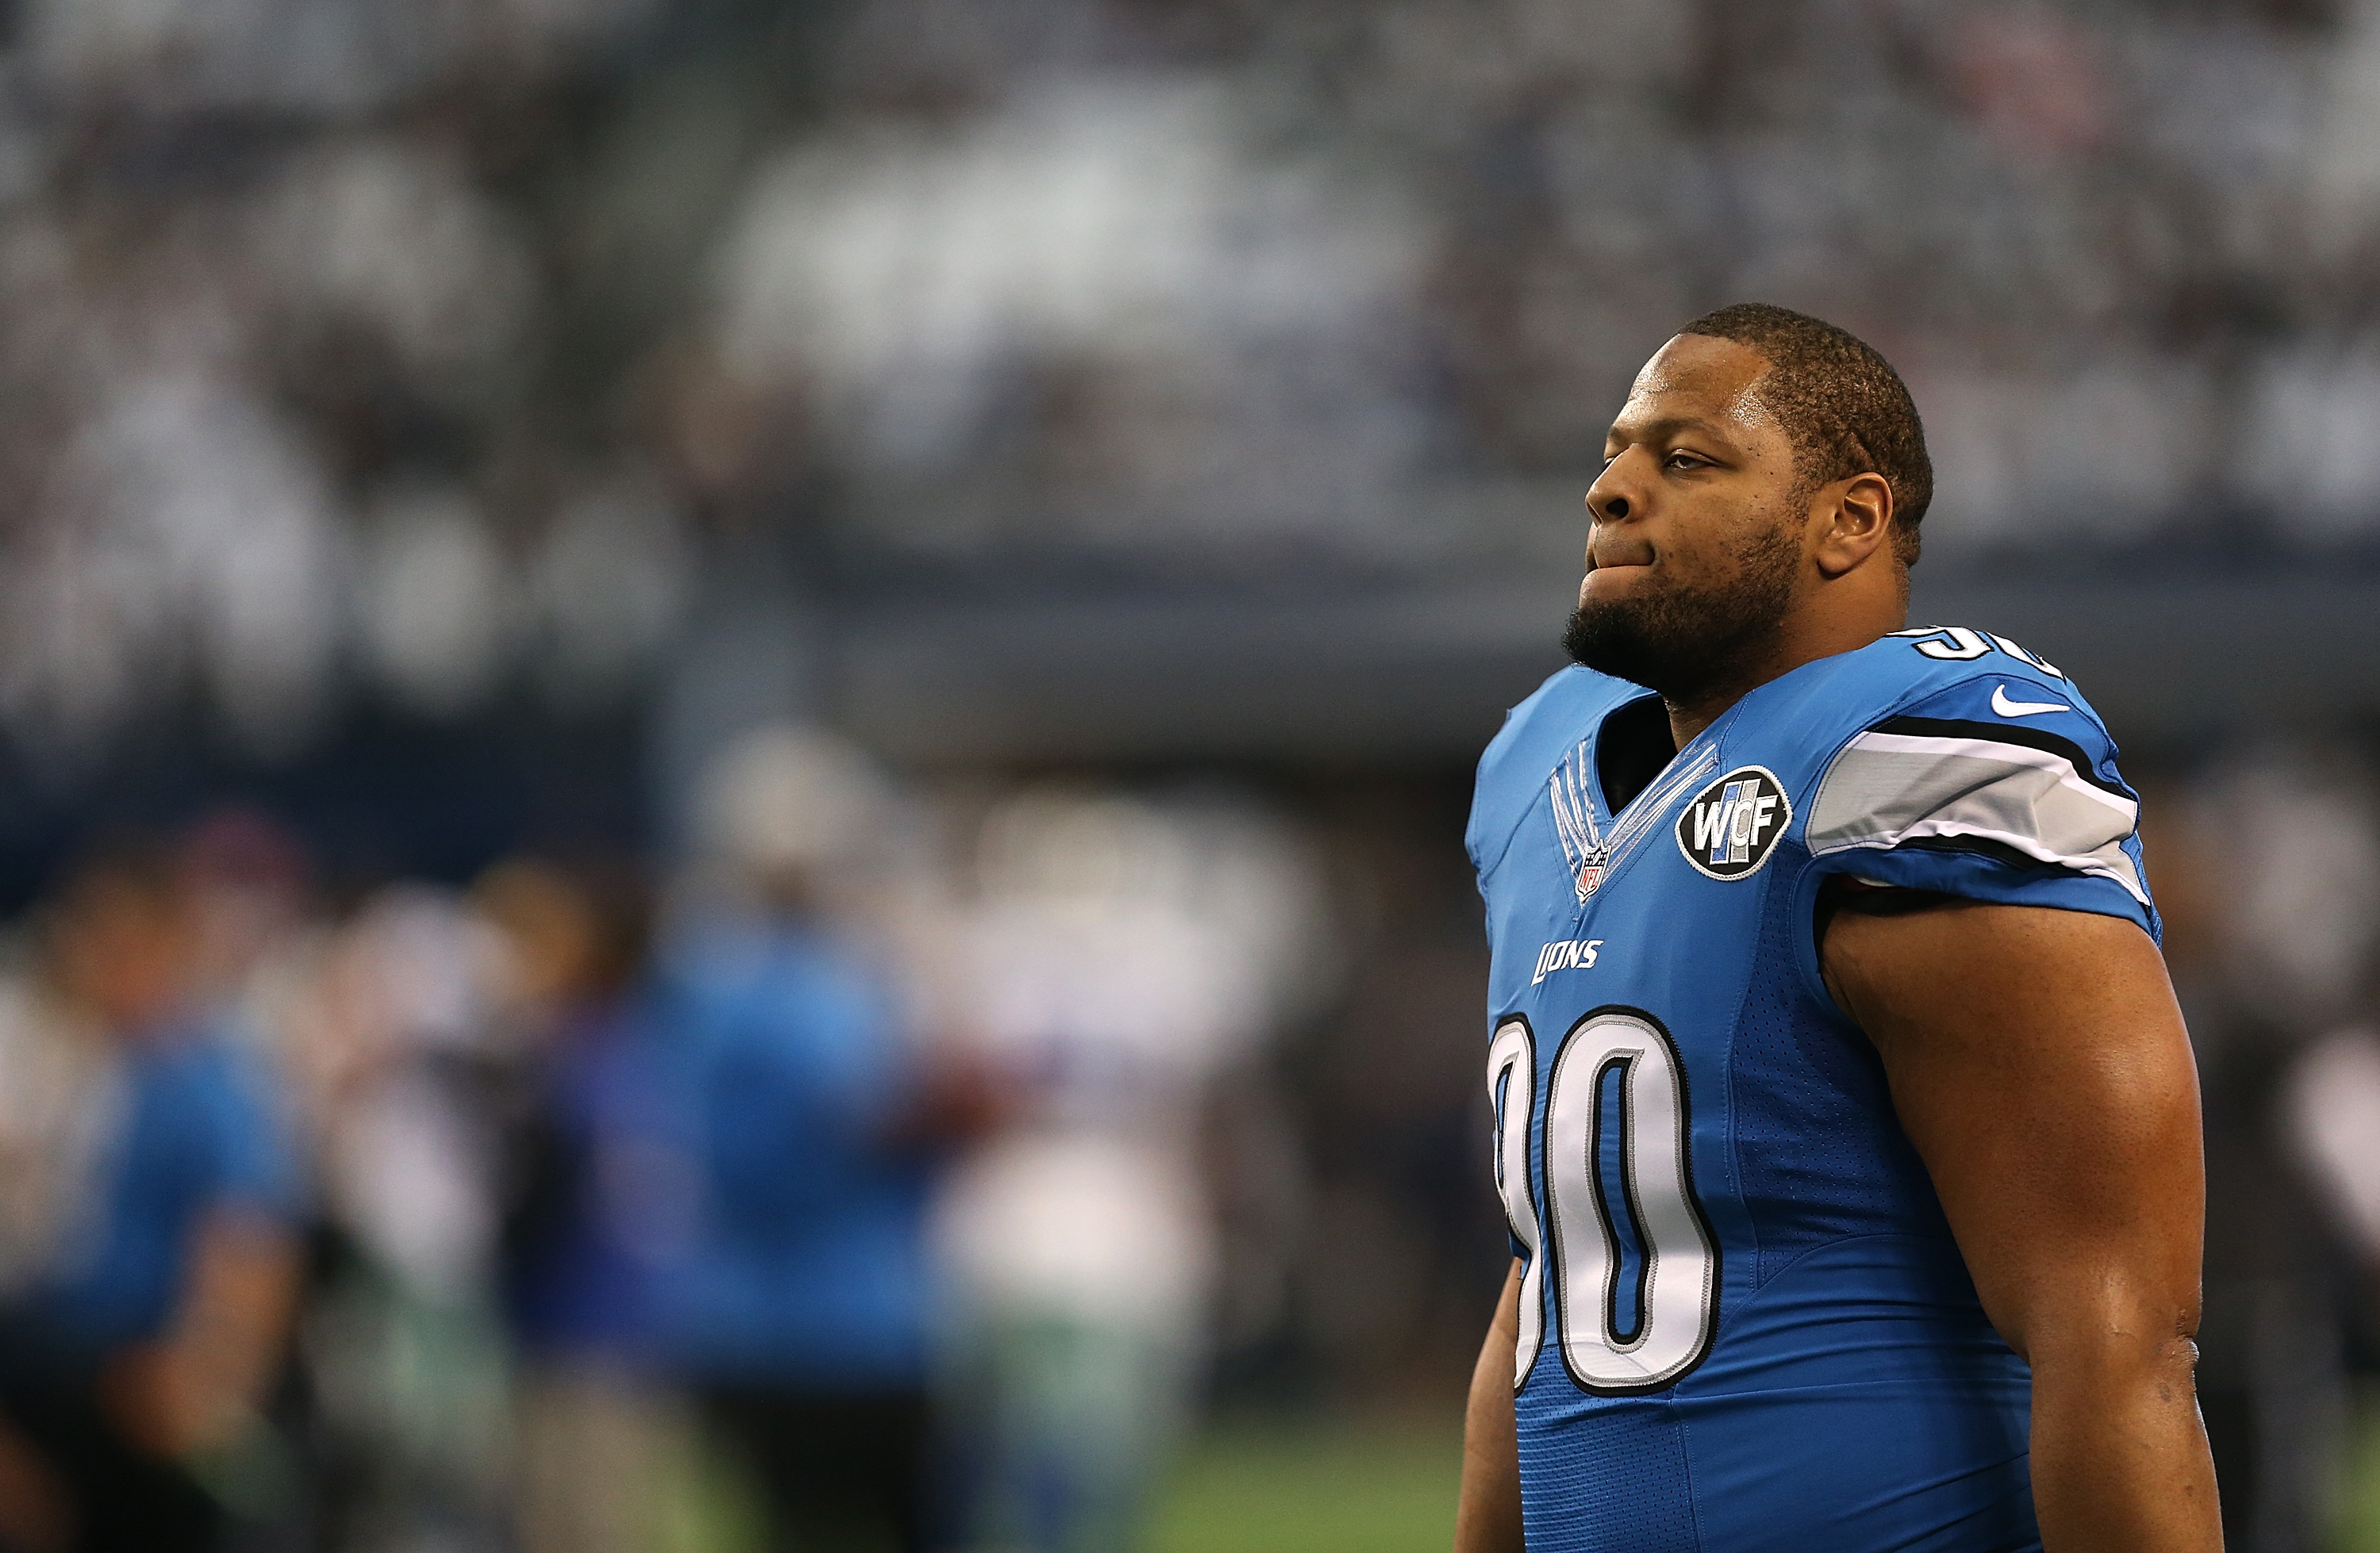 Detroit Lions defensive tackle Ndamukong Suh leaves press